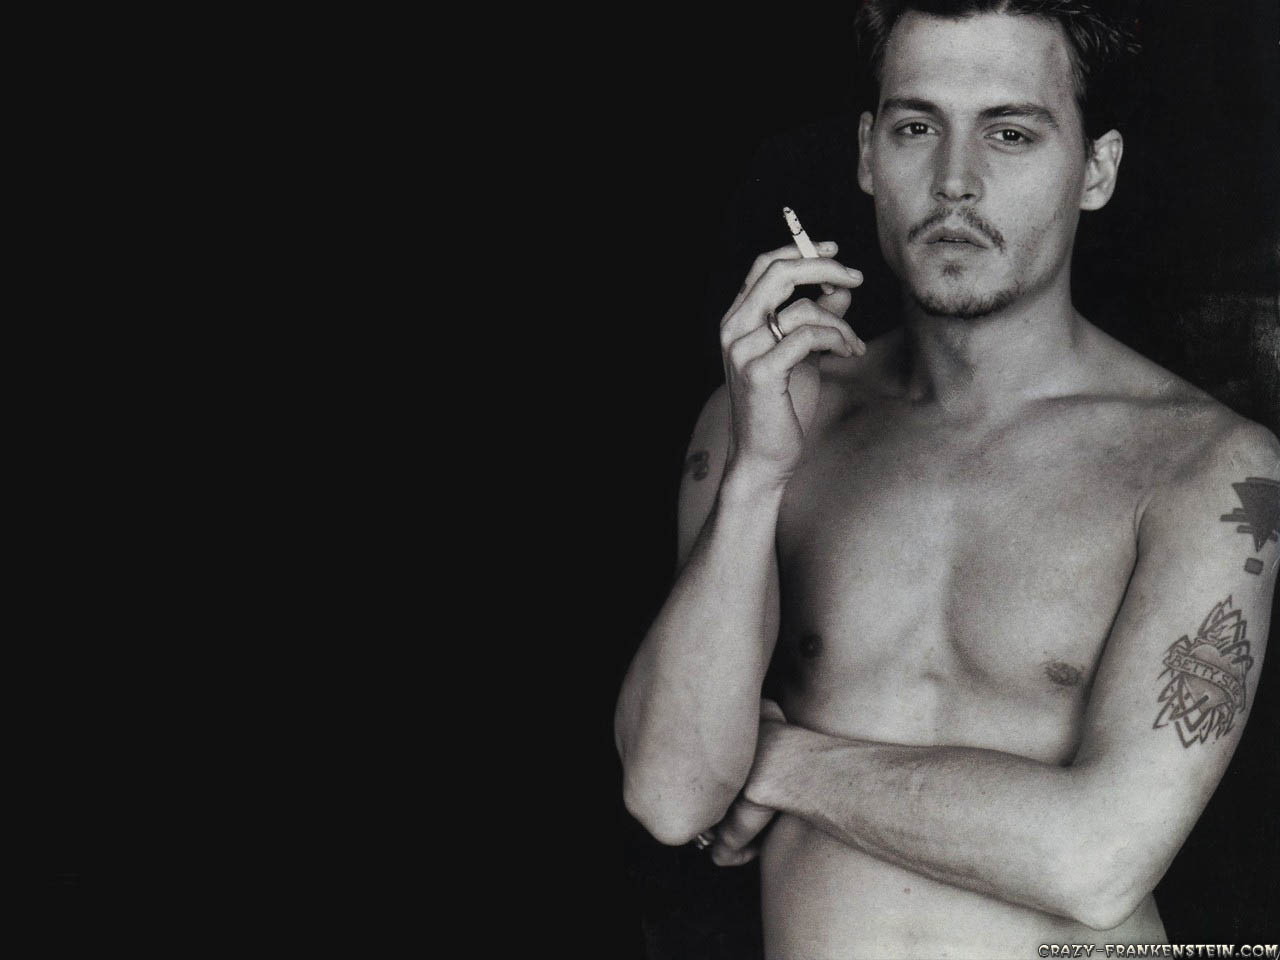 http://3.bp.blogspot.com/-T5LT1JoR6ko/TwnAwmT8JSI/AAAAAAAABow/UoihVGMSBoE/s1600/young-johnny-depp-celebrity-wallpapers-1280x960.jpg